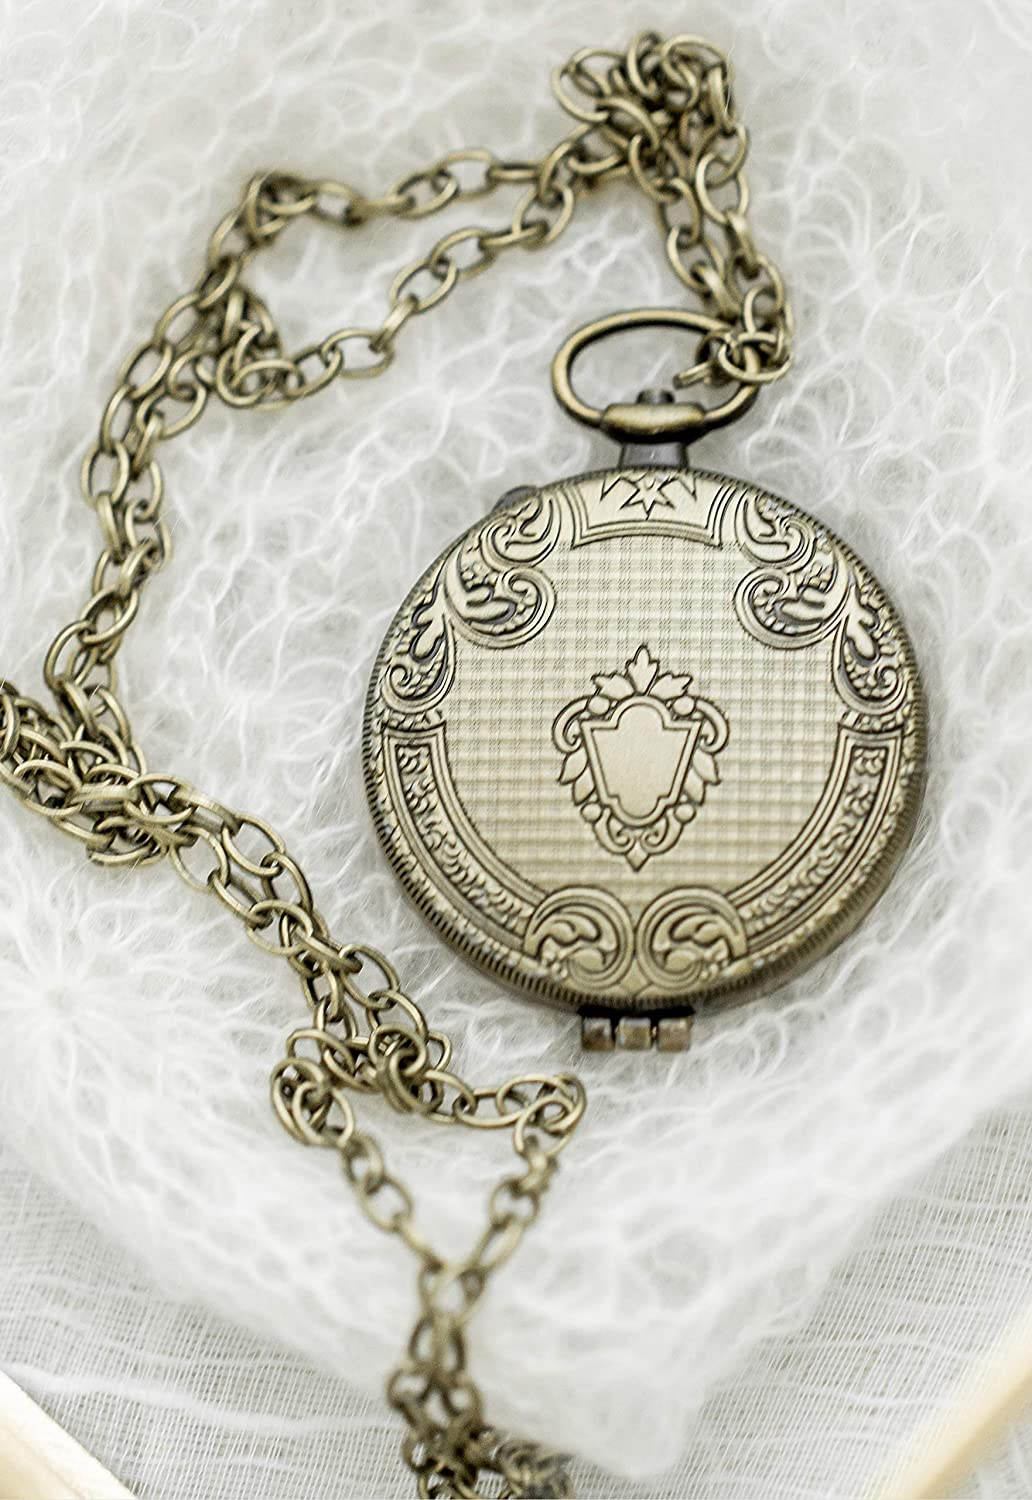 LoveyBrand Oversized Antique Bronze Locket Very Large 1.5 inch diameter with adjustable chain in gift box